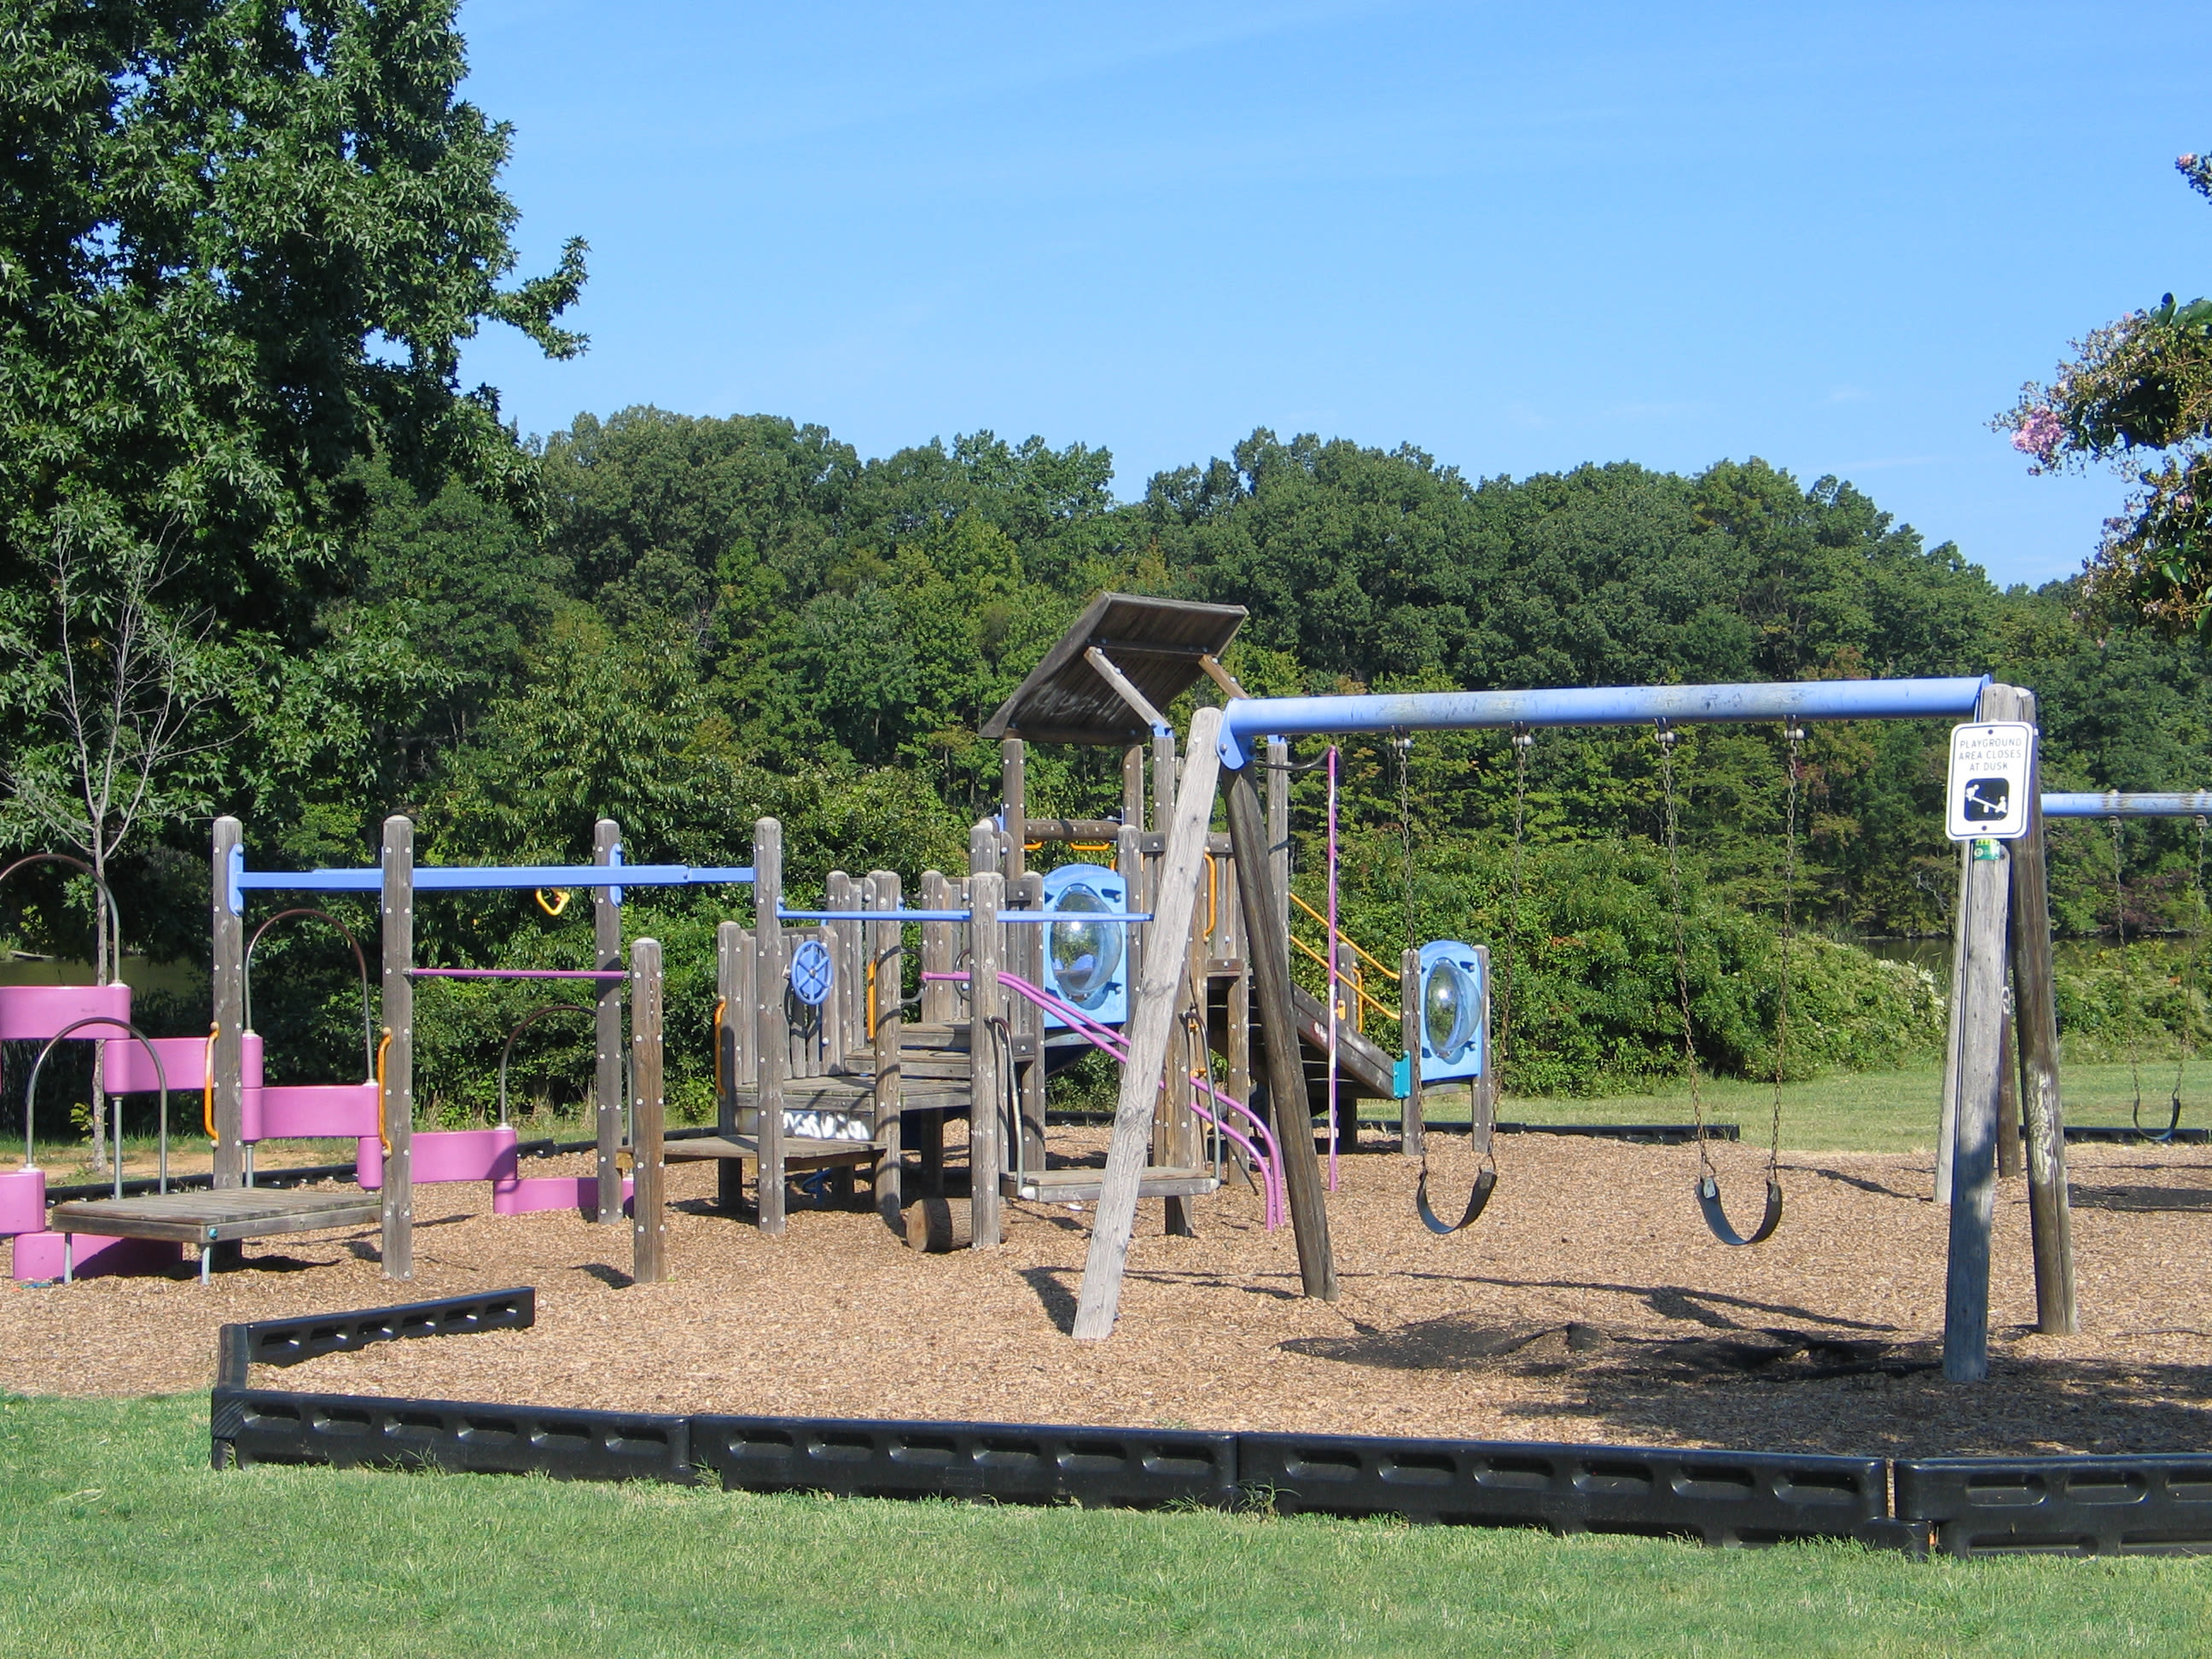 A playground that is great for entertaining at apartments in Essex, Maryland